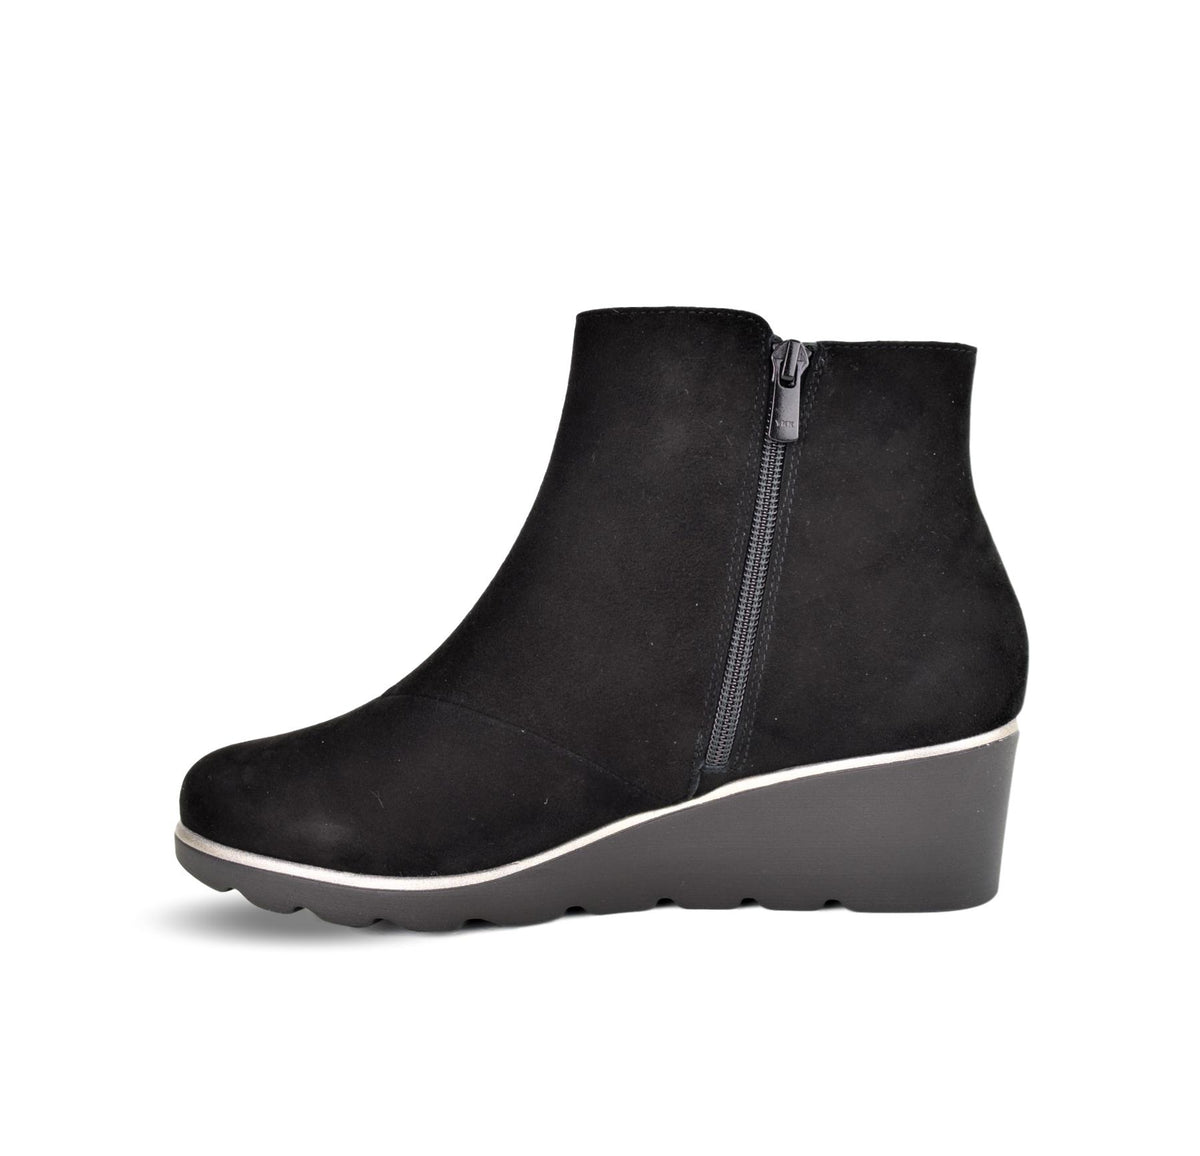 TIERRA - Dchicas Wedge Ankle Boot Black Suede